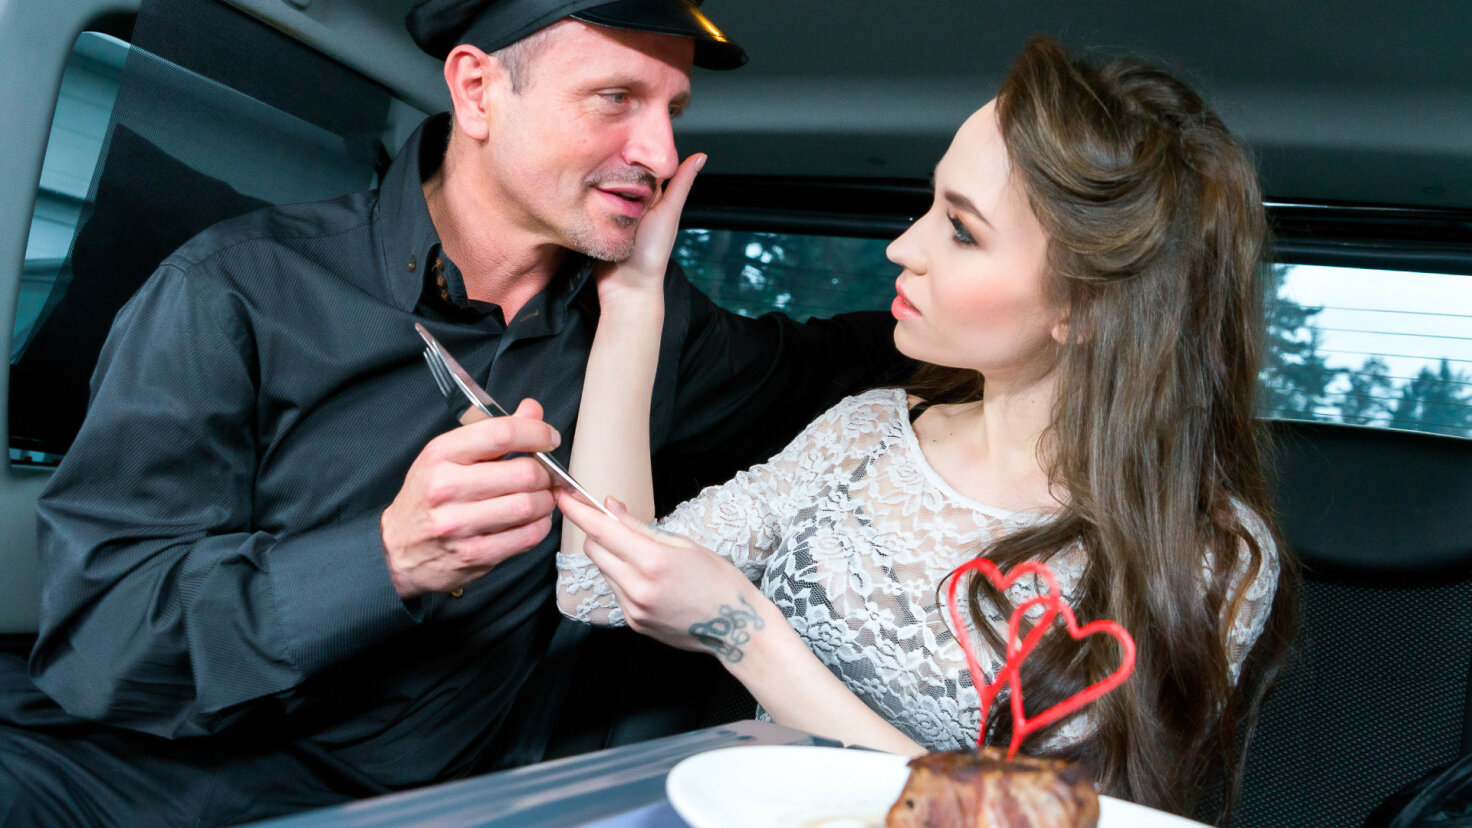 Steak & Blowjob Day hot fuck in the car with Russian babe Angel Rush